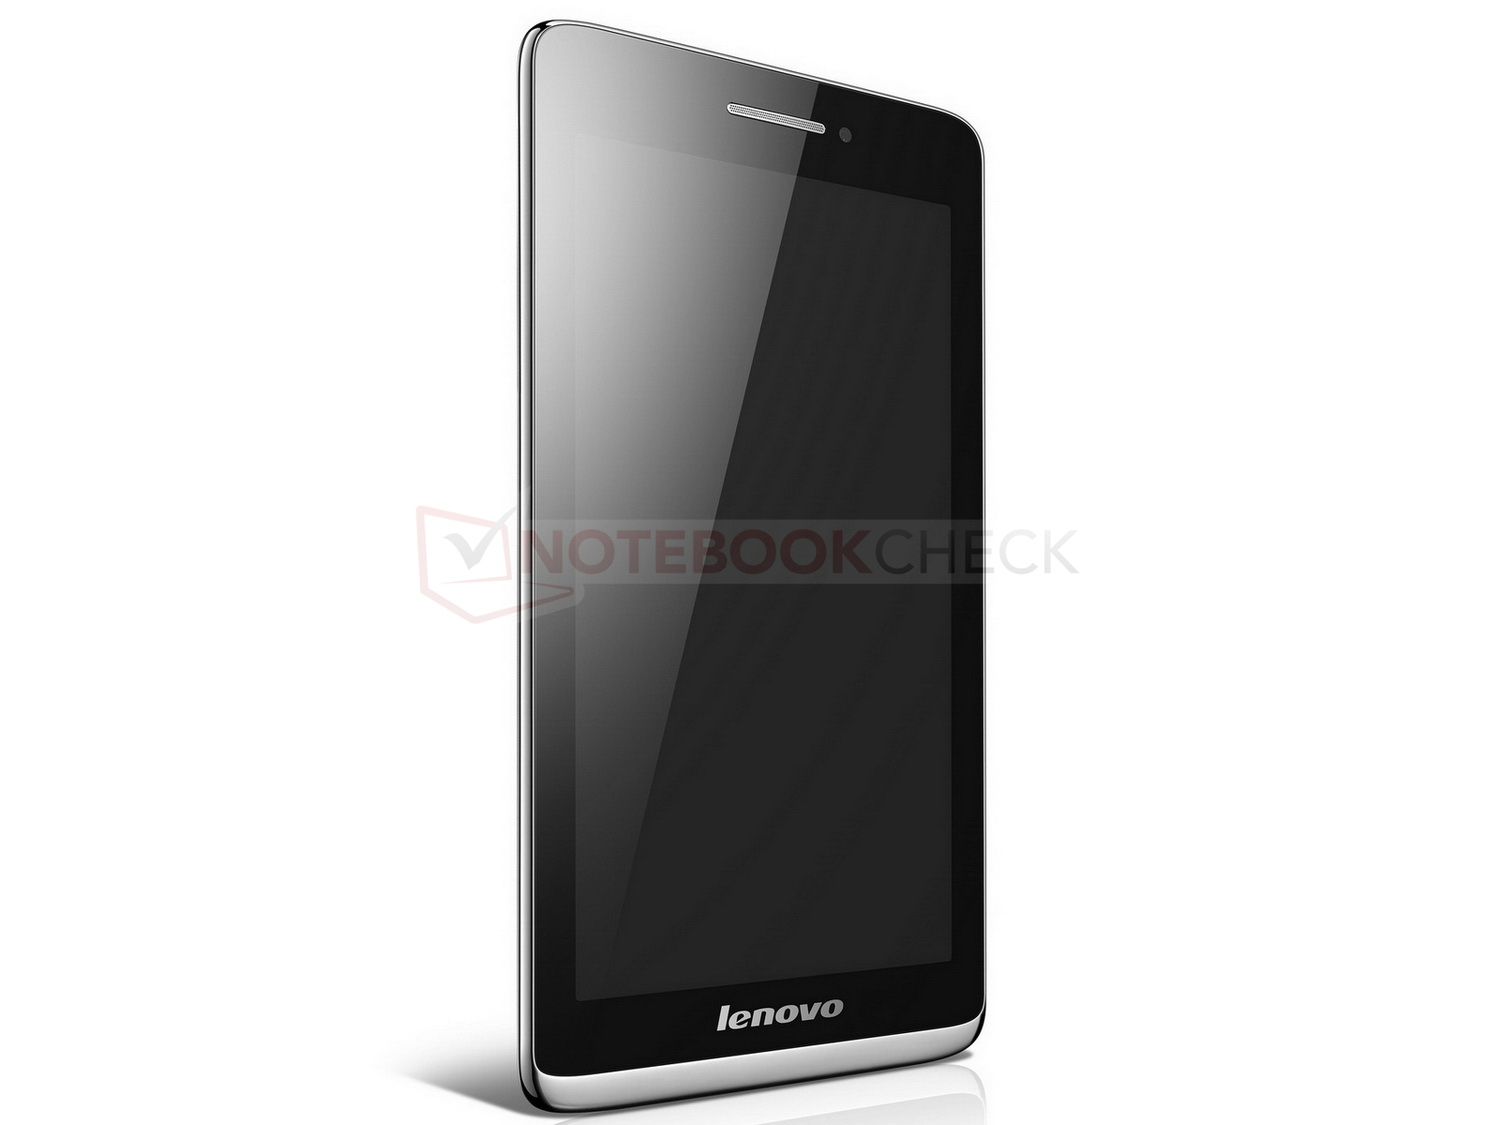 Lenovo Kndigt Vibe X S960 Smartphone Und S5000 Tablet An 16gb Silver